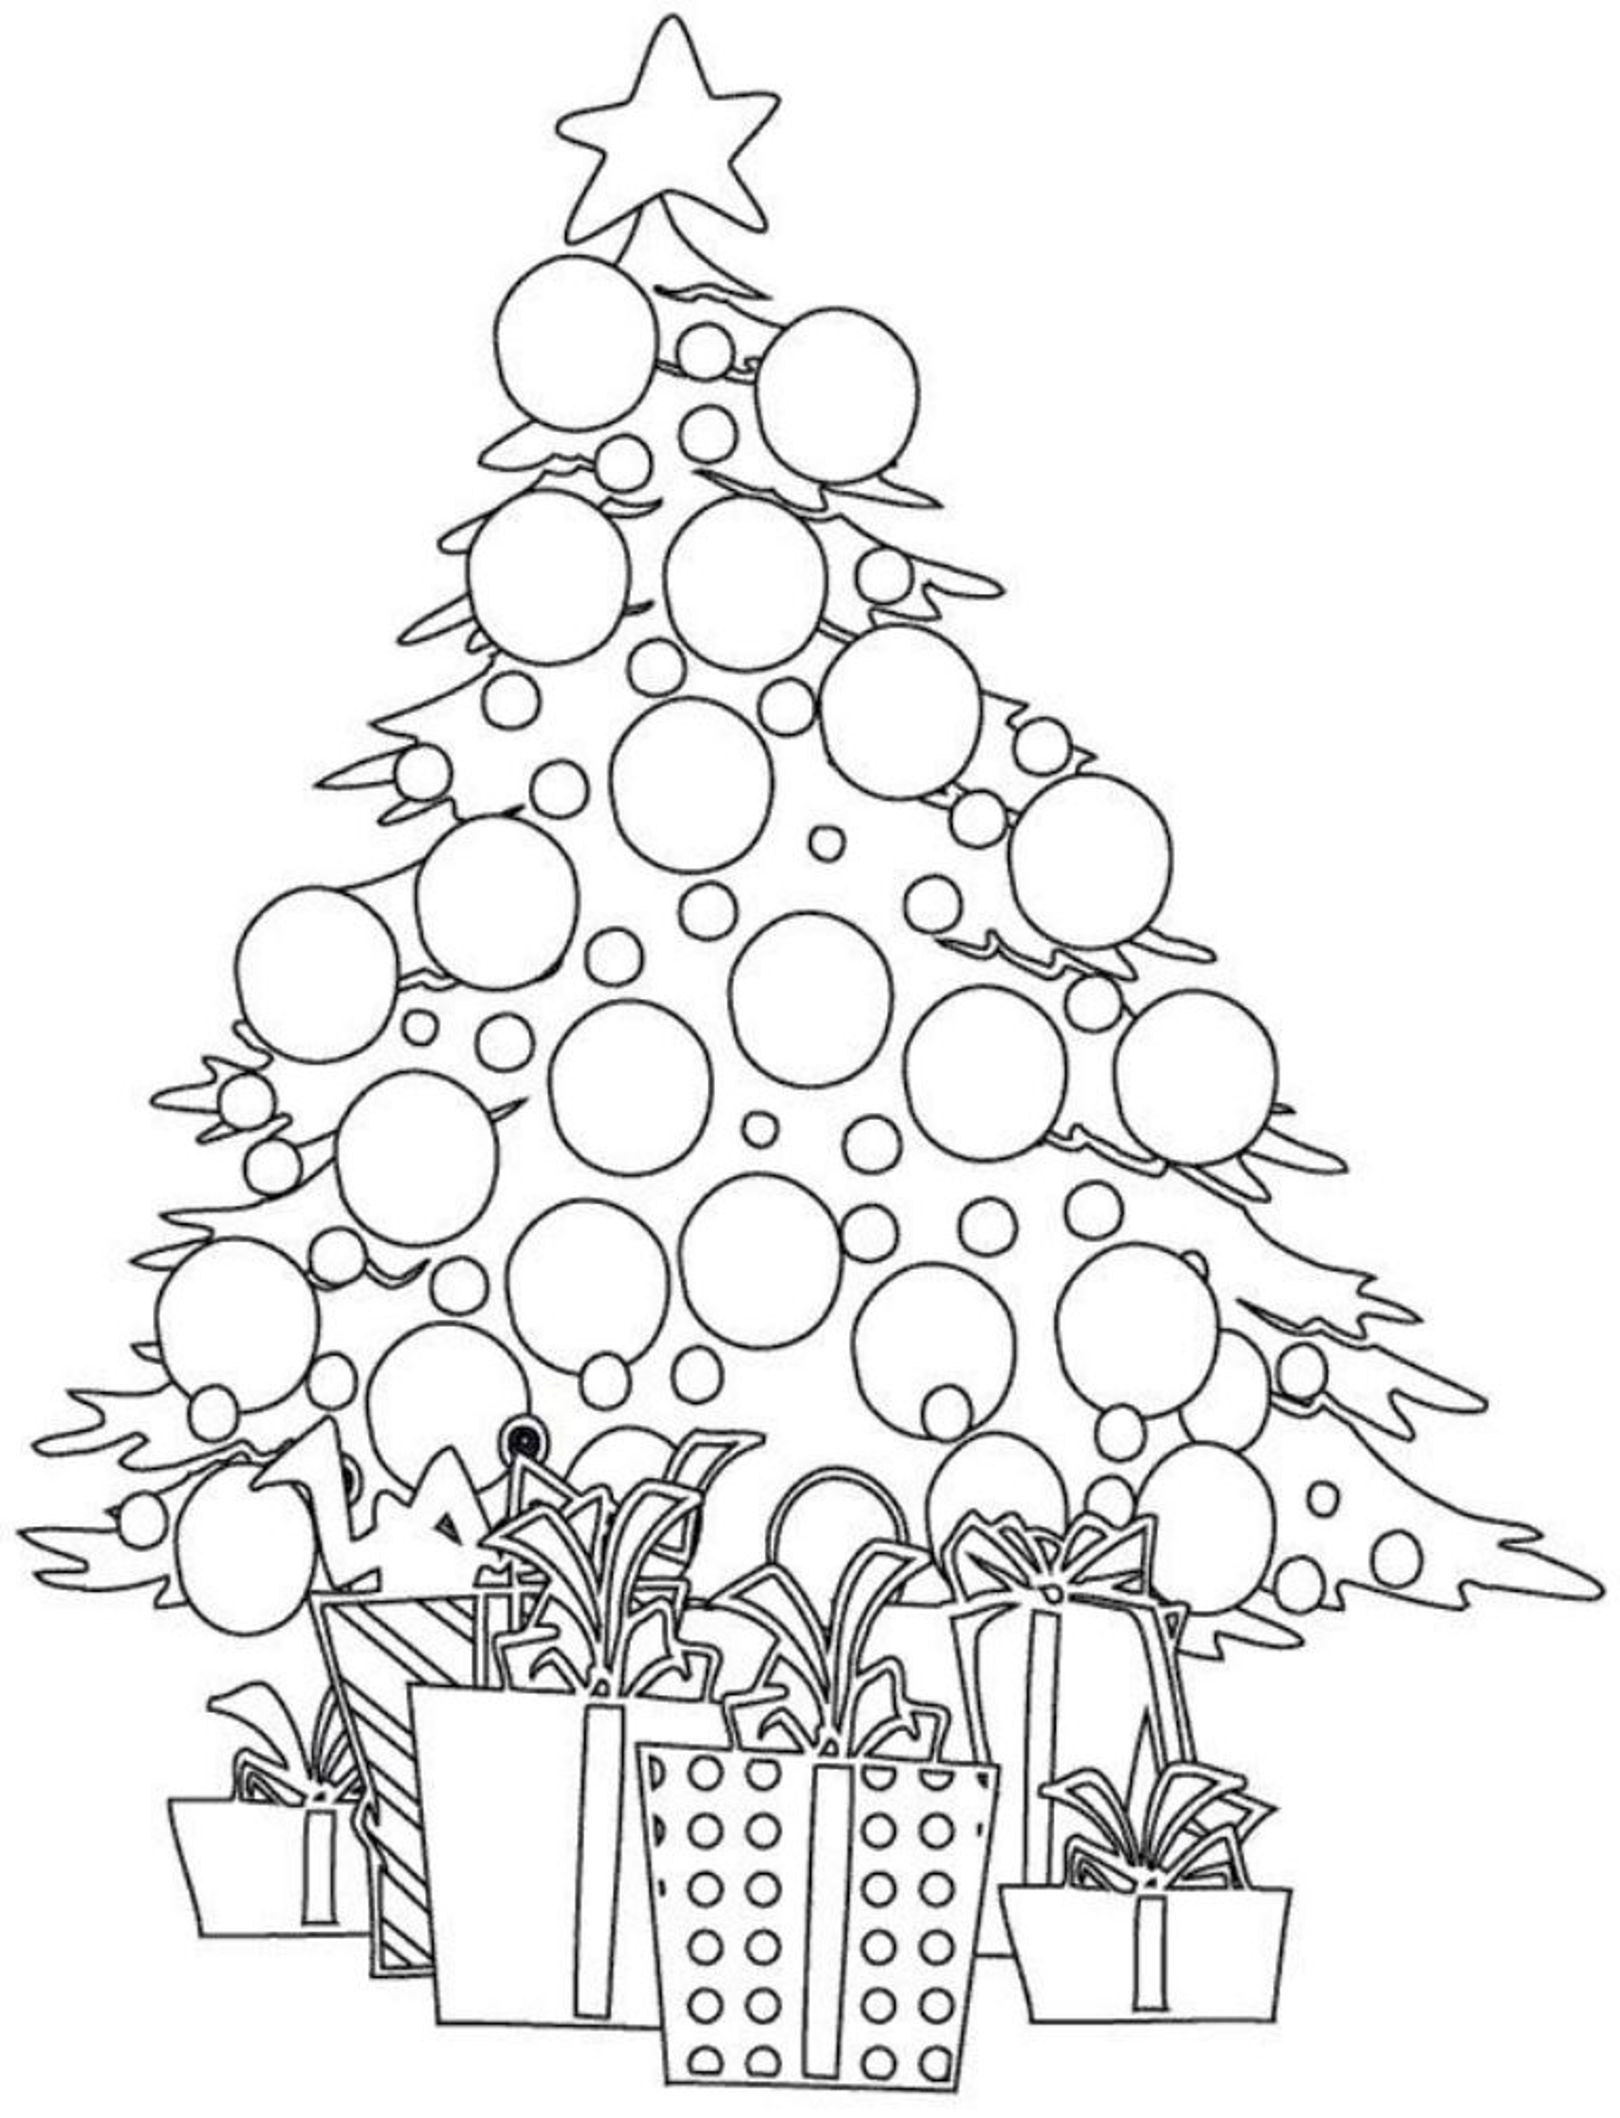 Christmas Coloring Tree With And Presents Pages For Kids